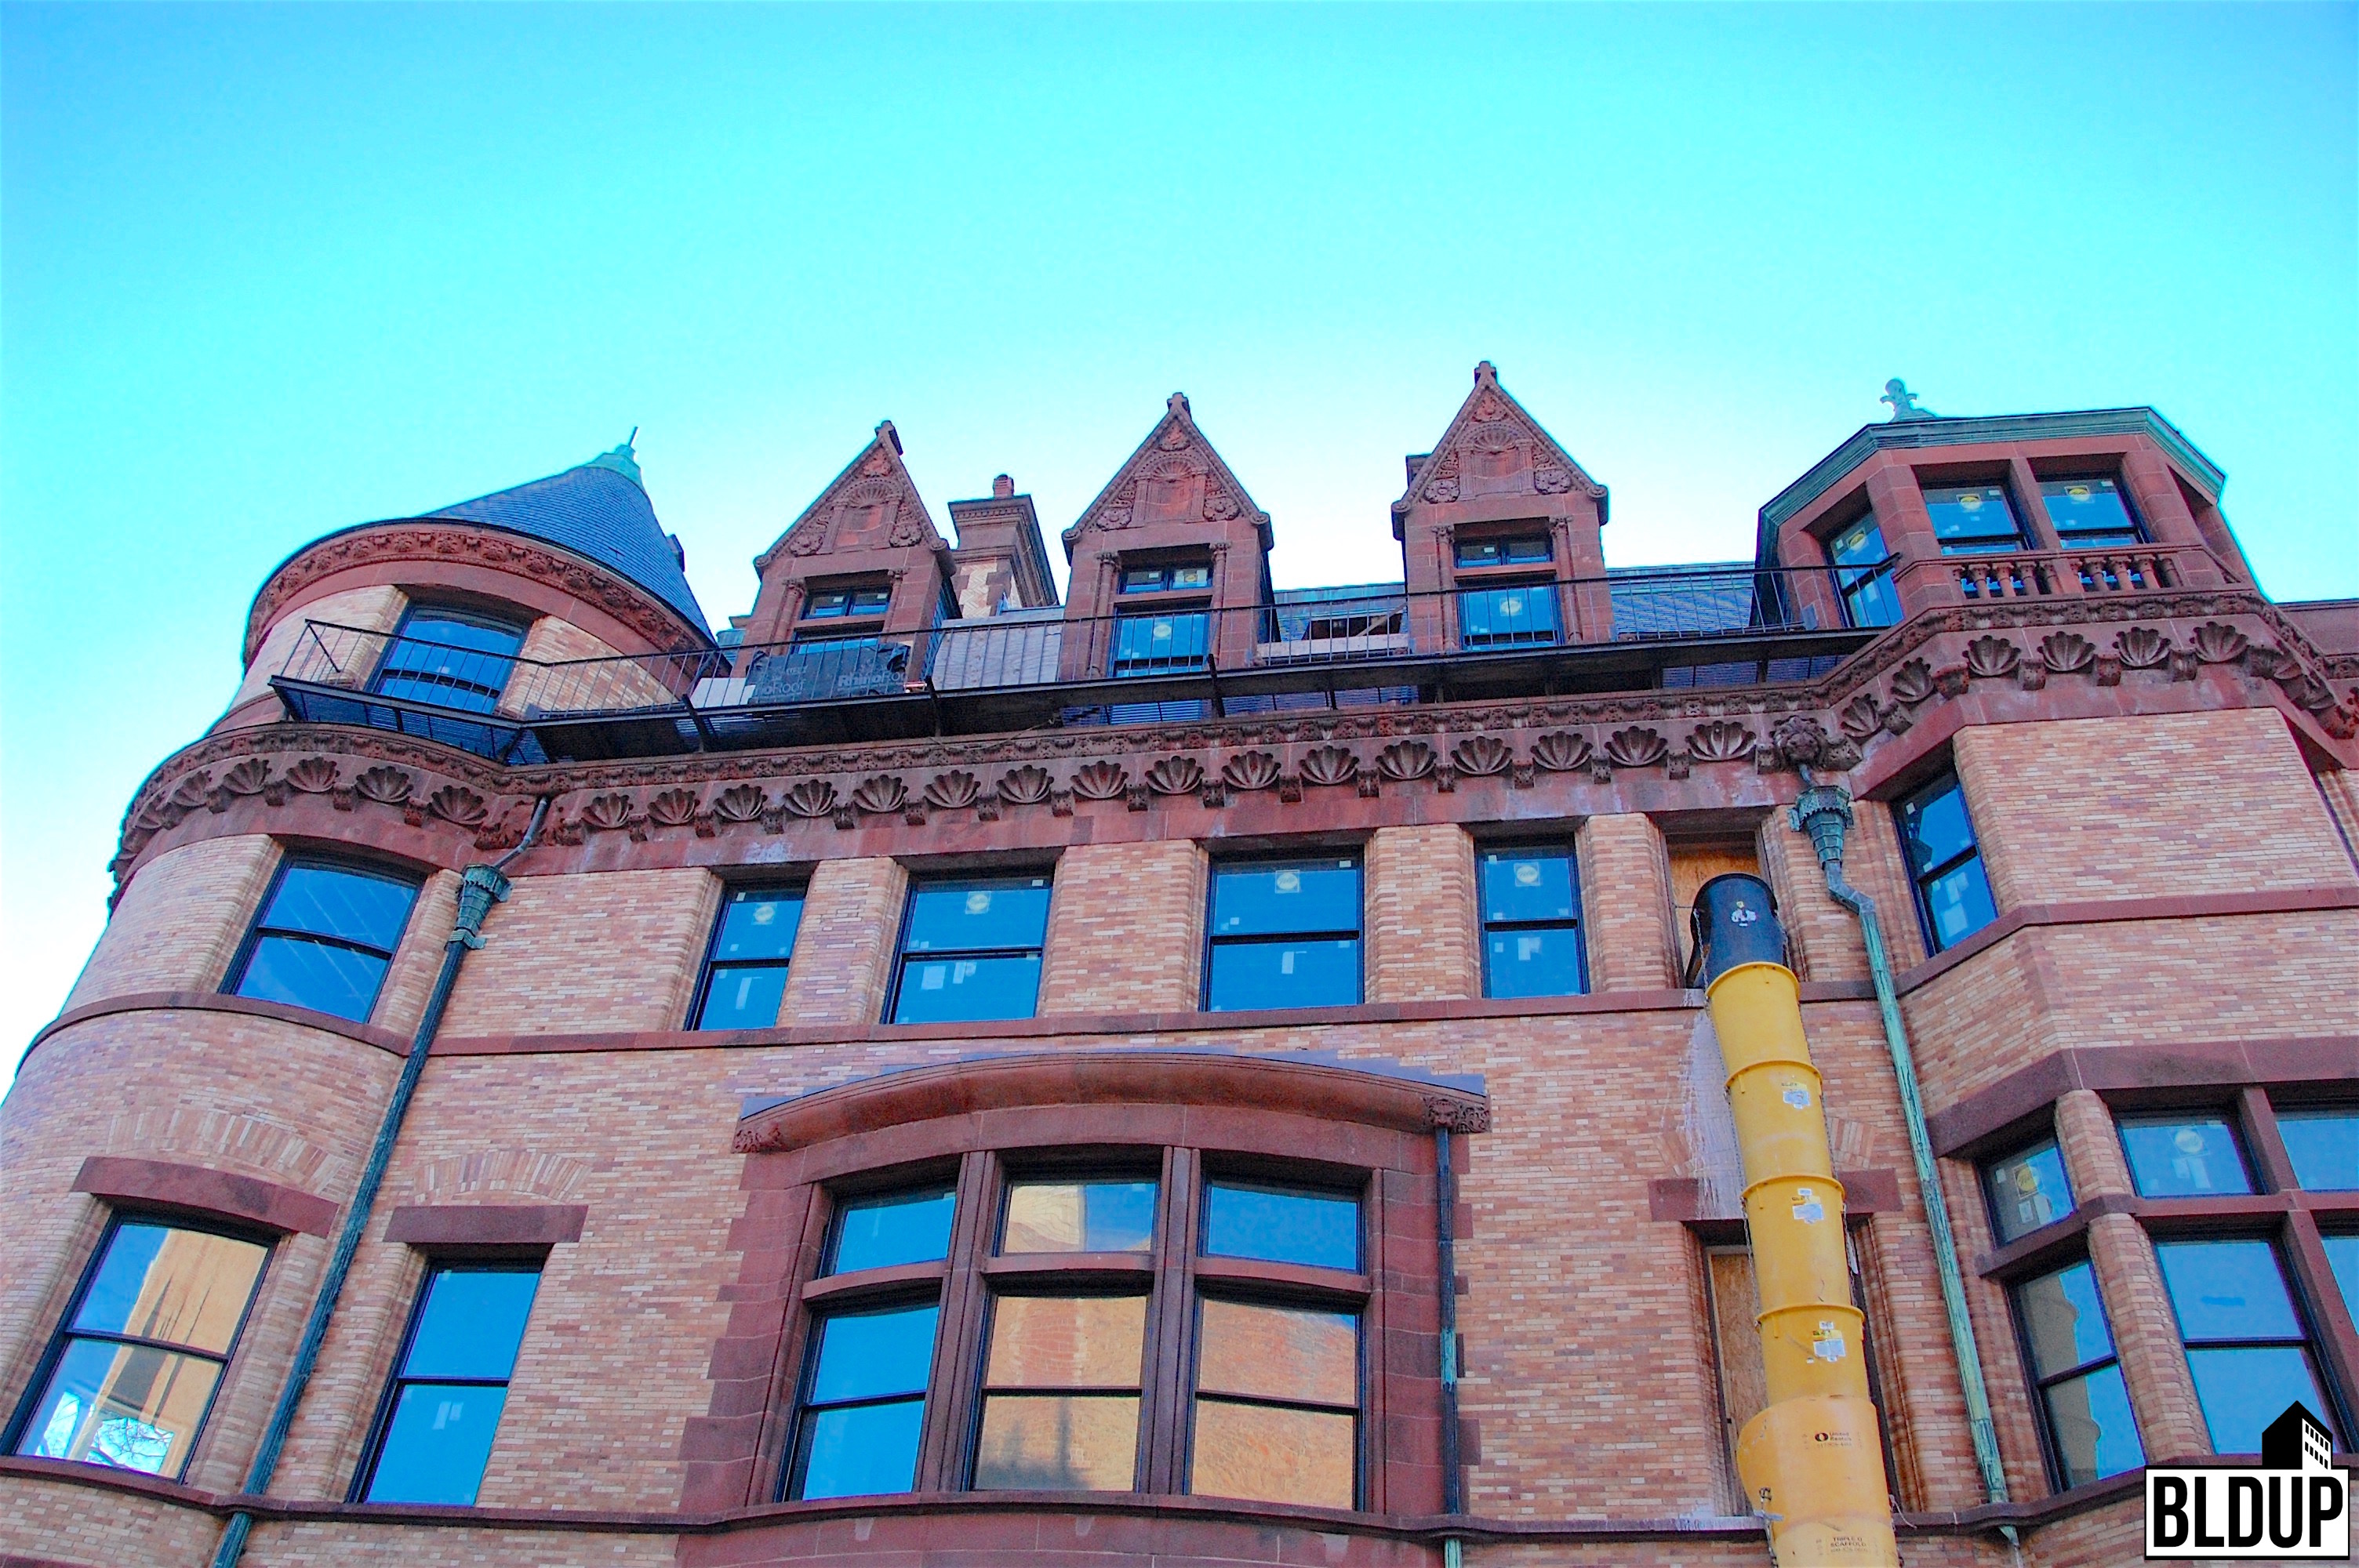 bldup the residences at hooper mansion the residences at hooper mansion historic back bay storrow drive charles river view boston six condominiums